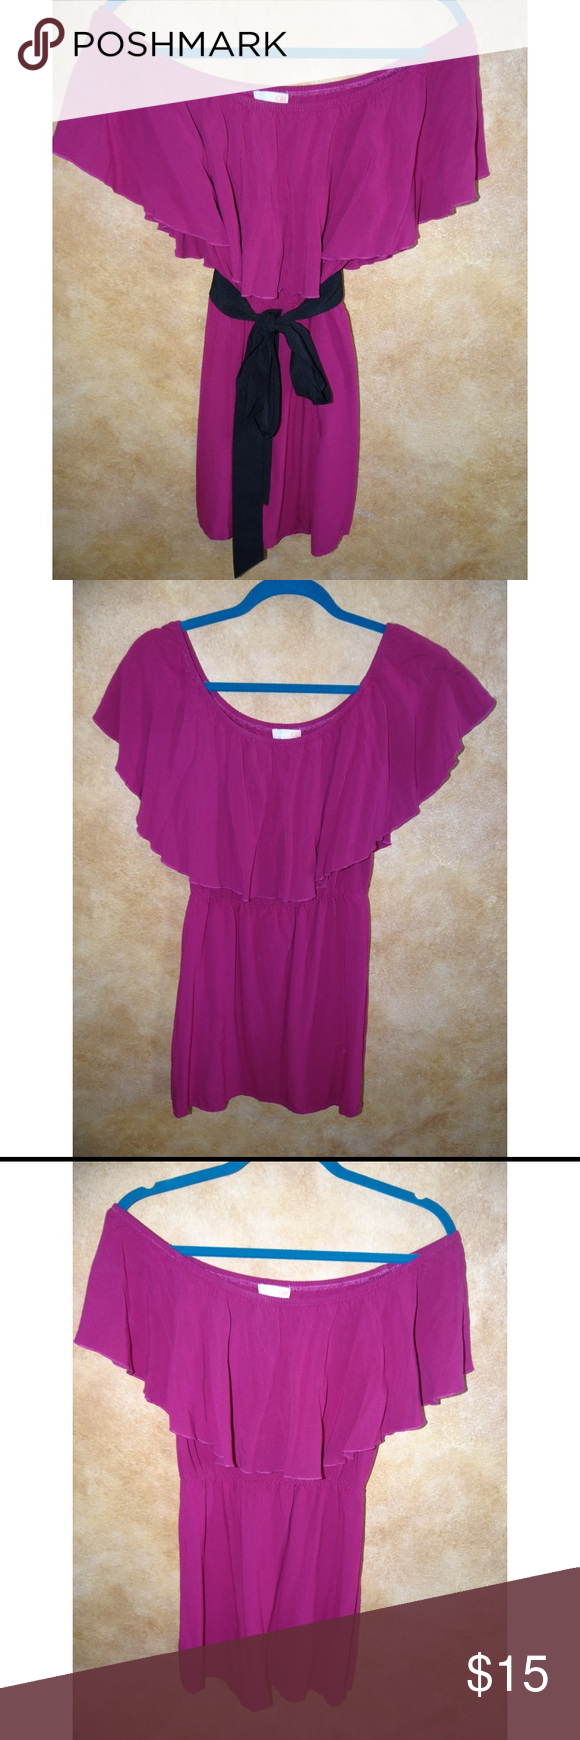 GB Fuchsia Dress Lightly worn GB dress. Can be worn off or on shoulder, both ways looks cute 😊. The belt loops are cut off but you can hardly notice! Dress color is closer to last photo. ✨All offers considered✨  🌸Bundle 3 items for 15% OFF or BOGO get one 50% up to as many items as you'd like 🌸 Gianni Bini Dresses Mini